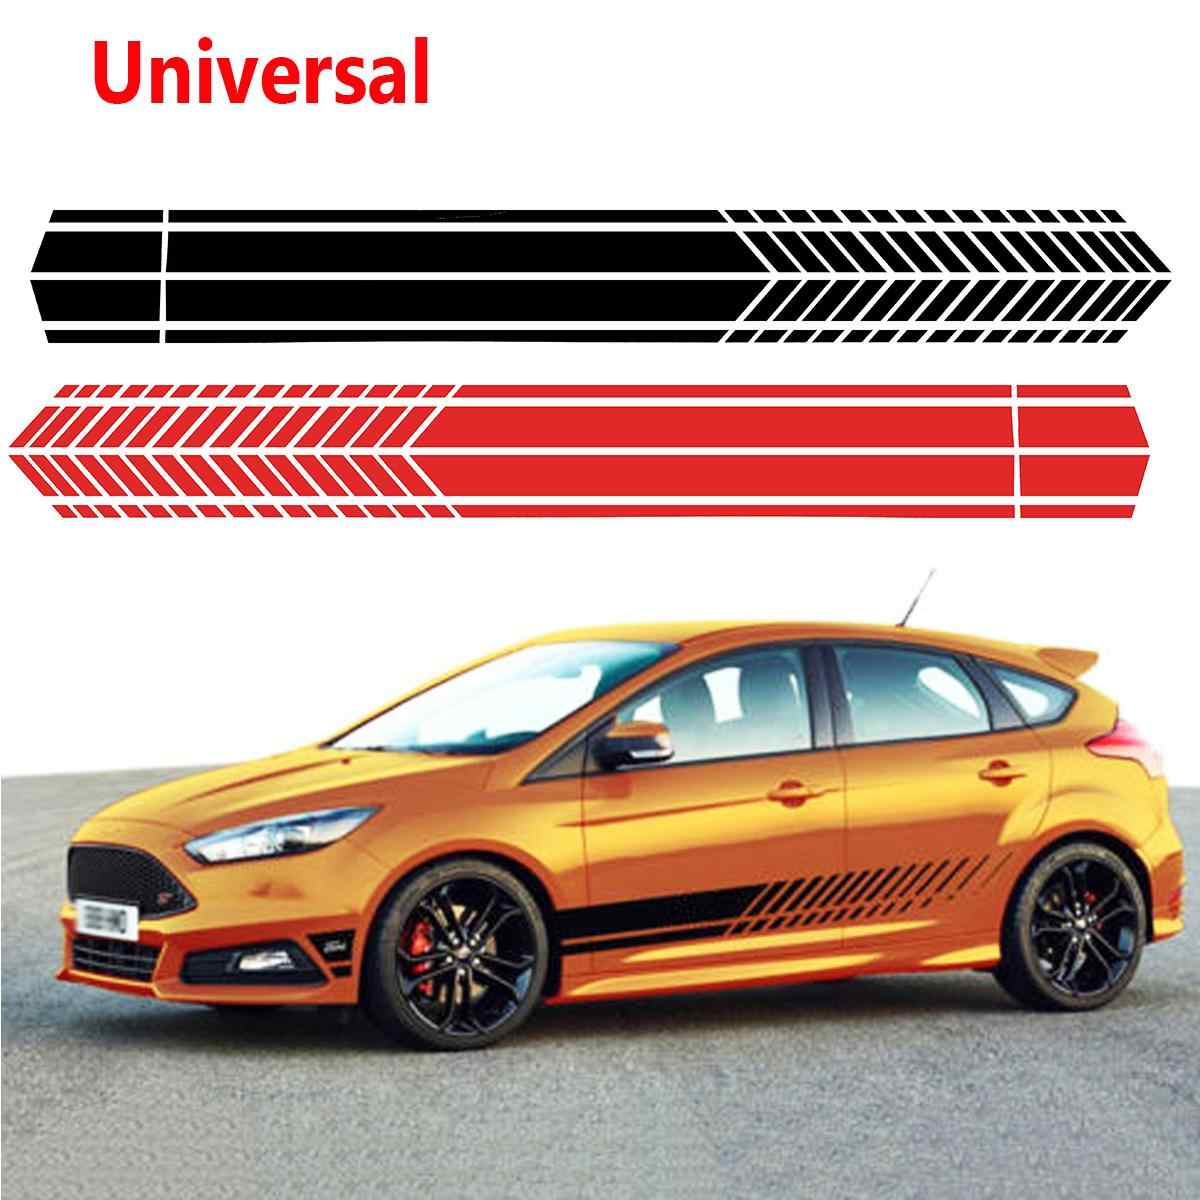 cd4e48ec0d Universal Sports Racing Stripe Graphic Stickers Truck Auto Car Body Side  Door Decals